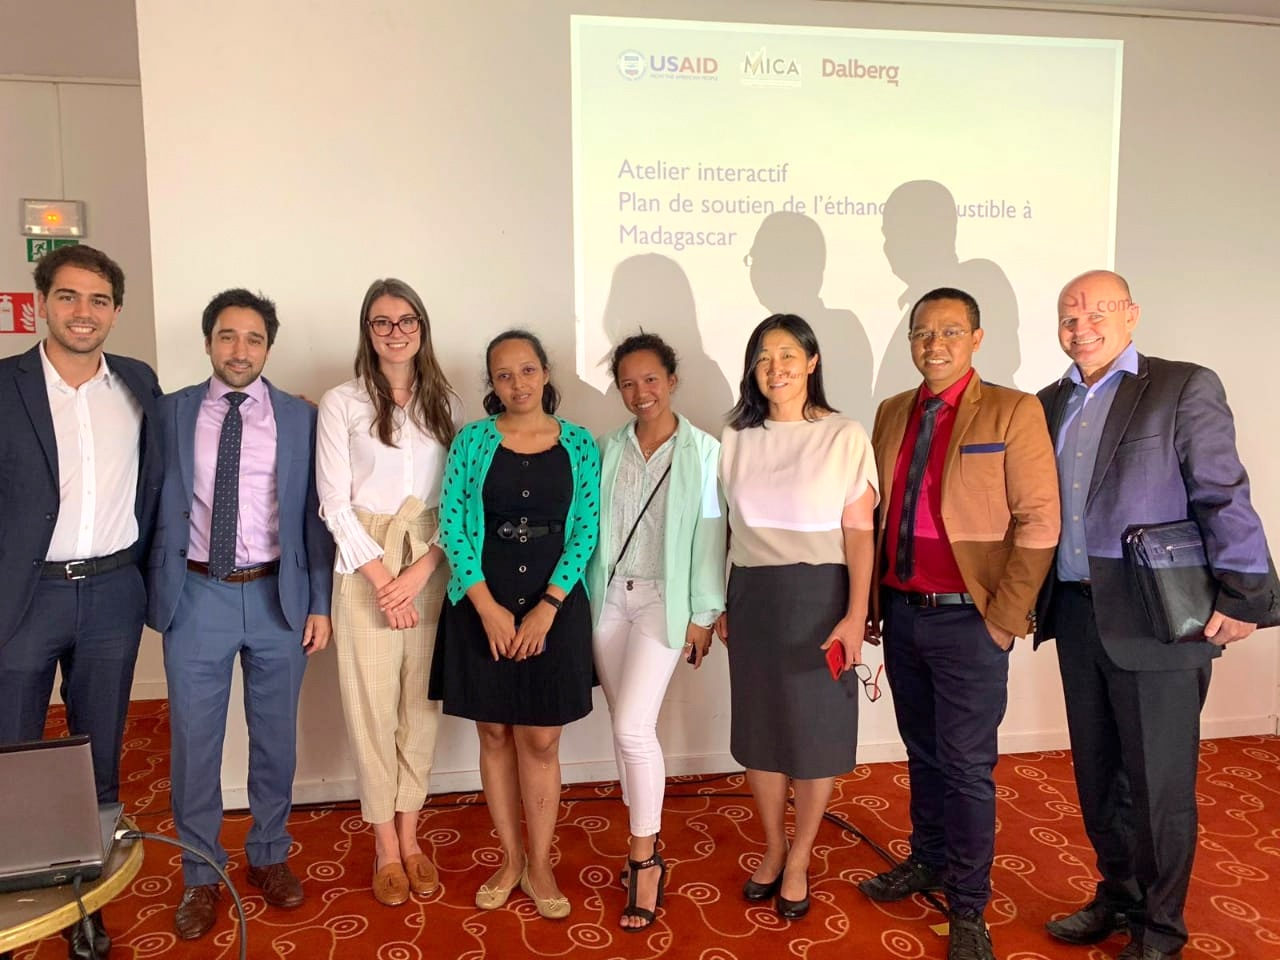 Interactive workshop for a support plan on the use of ethanol in Madagascar